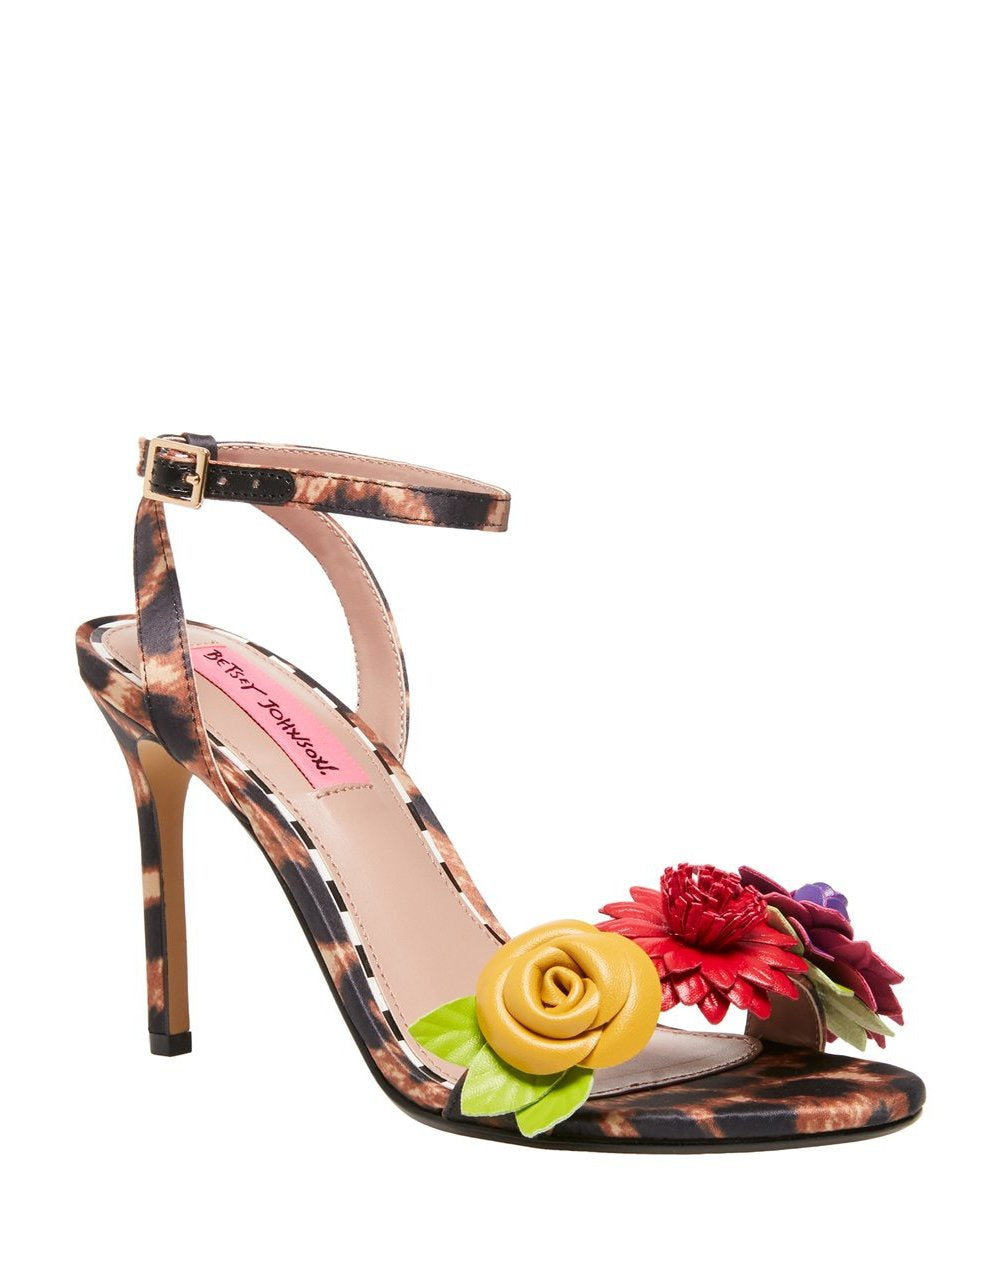 FLUER LEOPARD - SHOES - Betsey Johnson